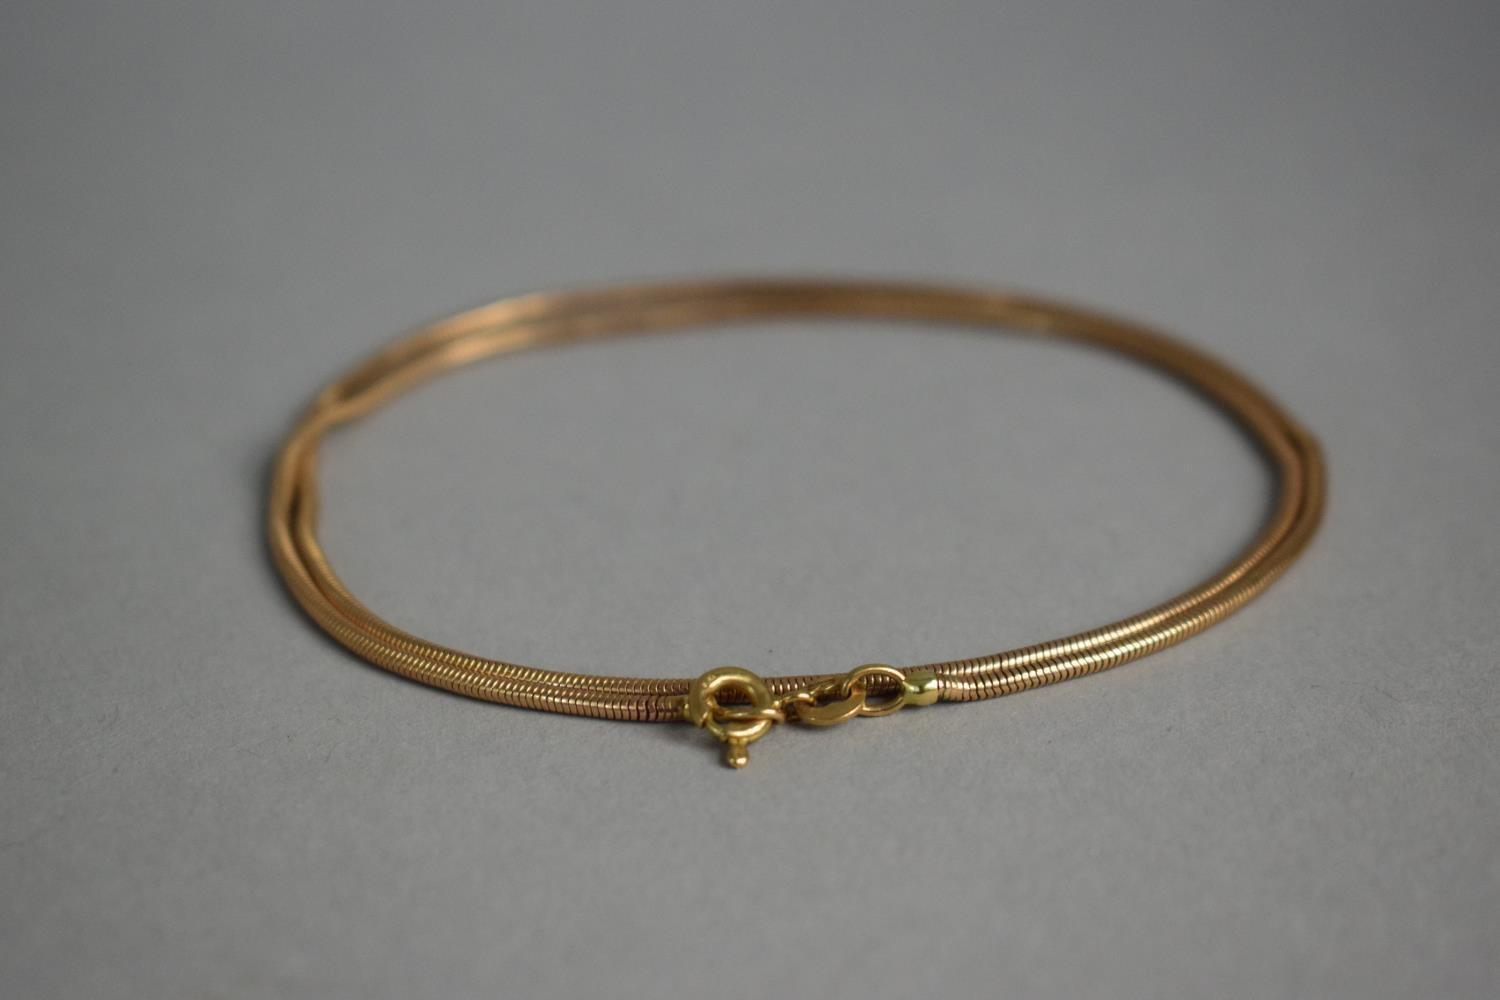 Lot 320 - A 9ct Gold Rope Necklace, 7.1gms